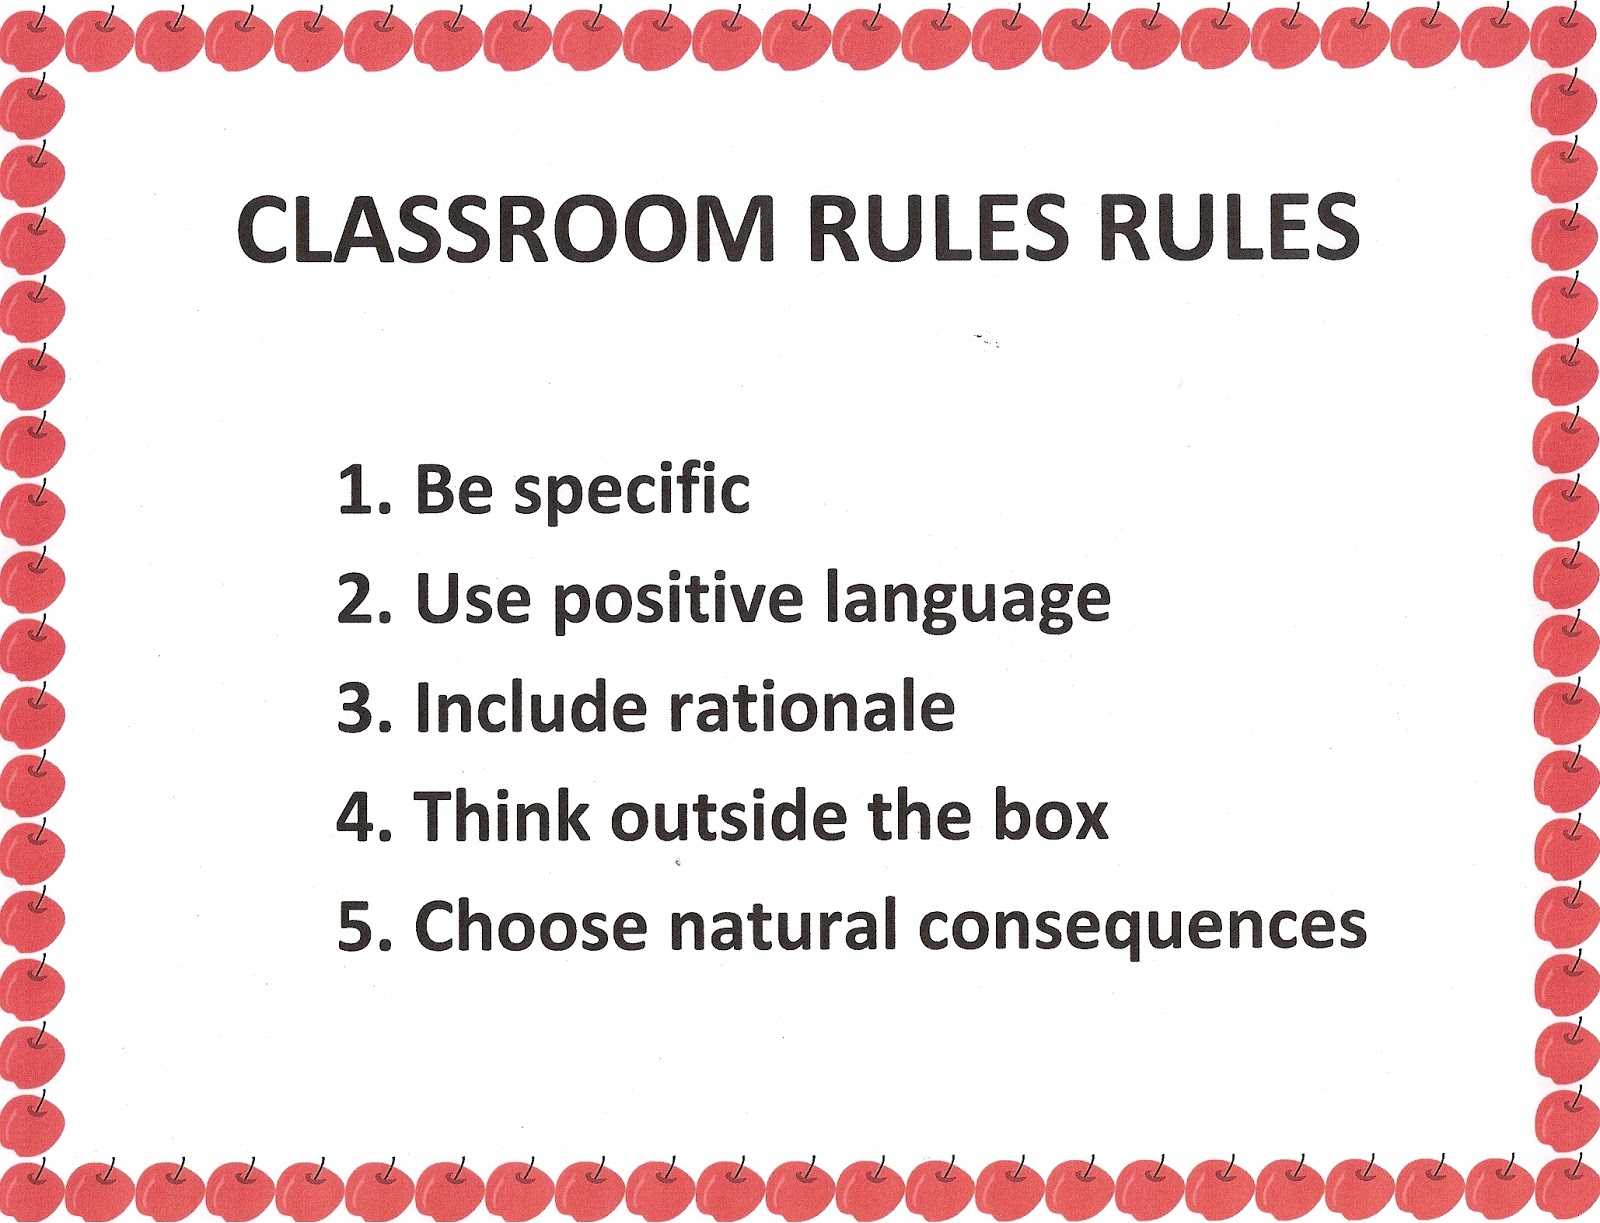 establishing ground rules and promoting appropriate This will give the chance to evaluate each individual's preferences and gives an overall view on how to maintain a level of courtesy and respect establishing ground rules adequate for the group being a teacher means also to be a role model and my behaviour will reflect on my students.